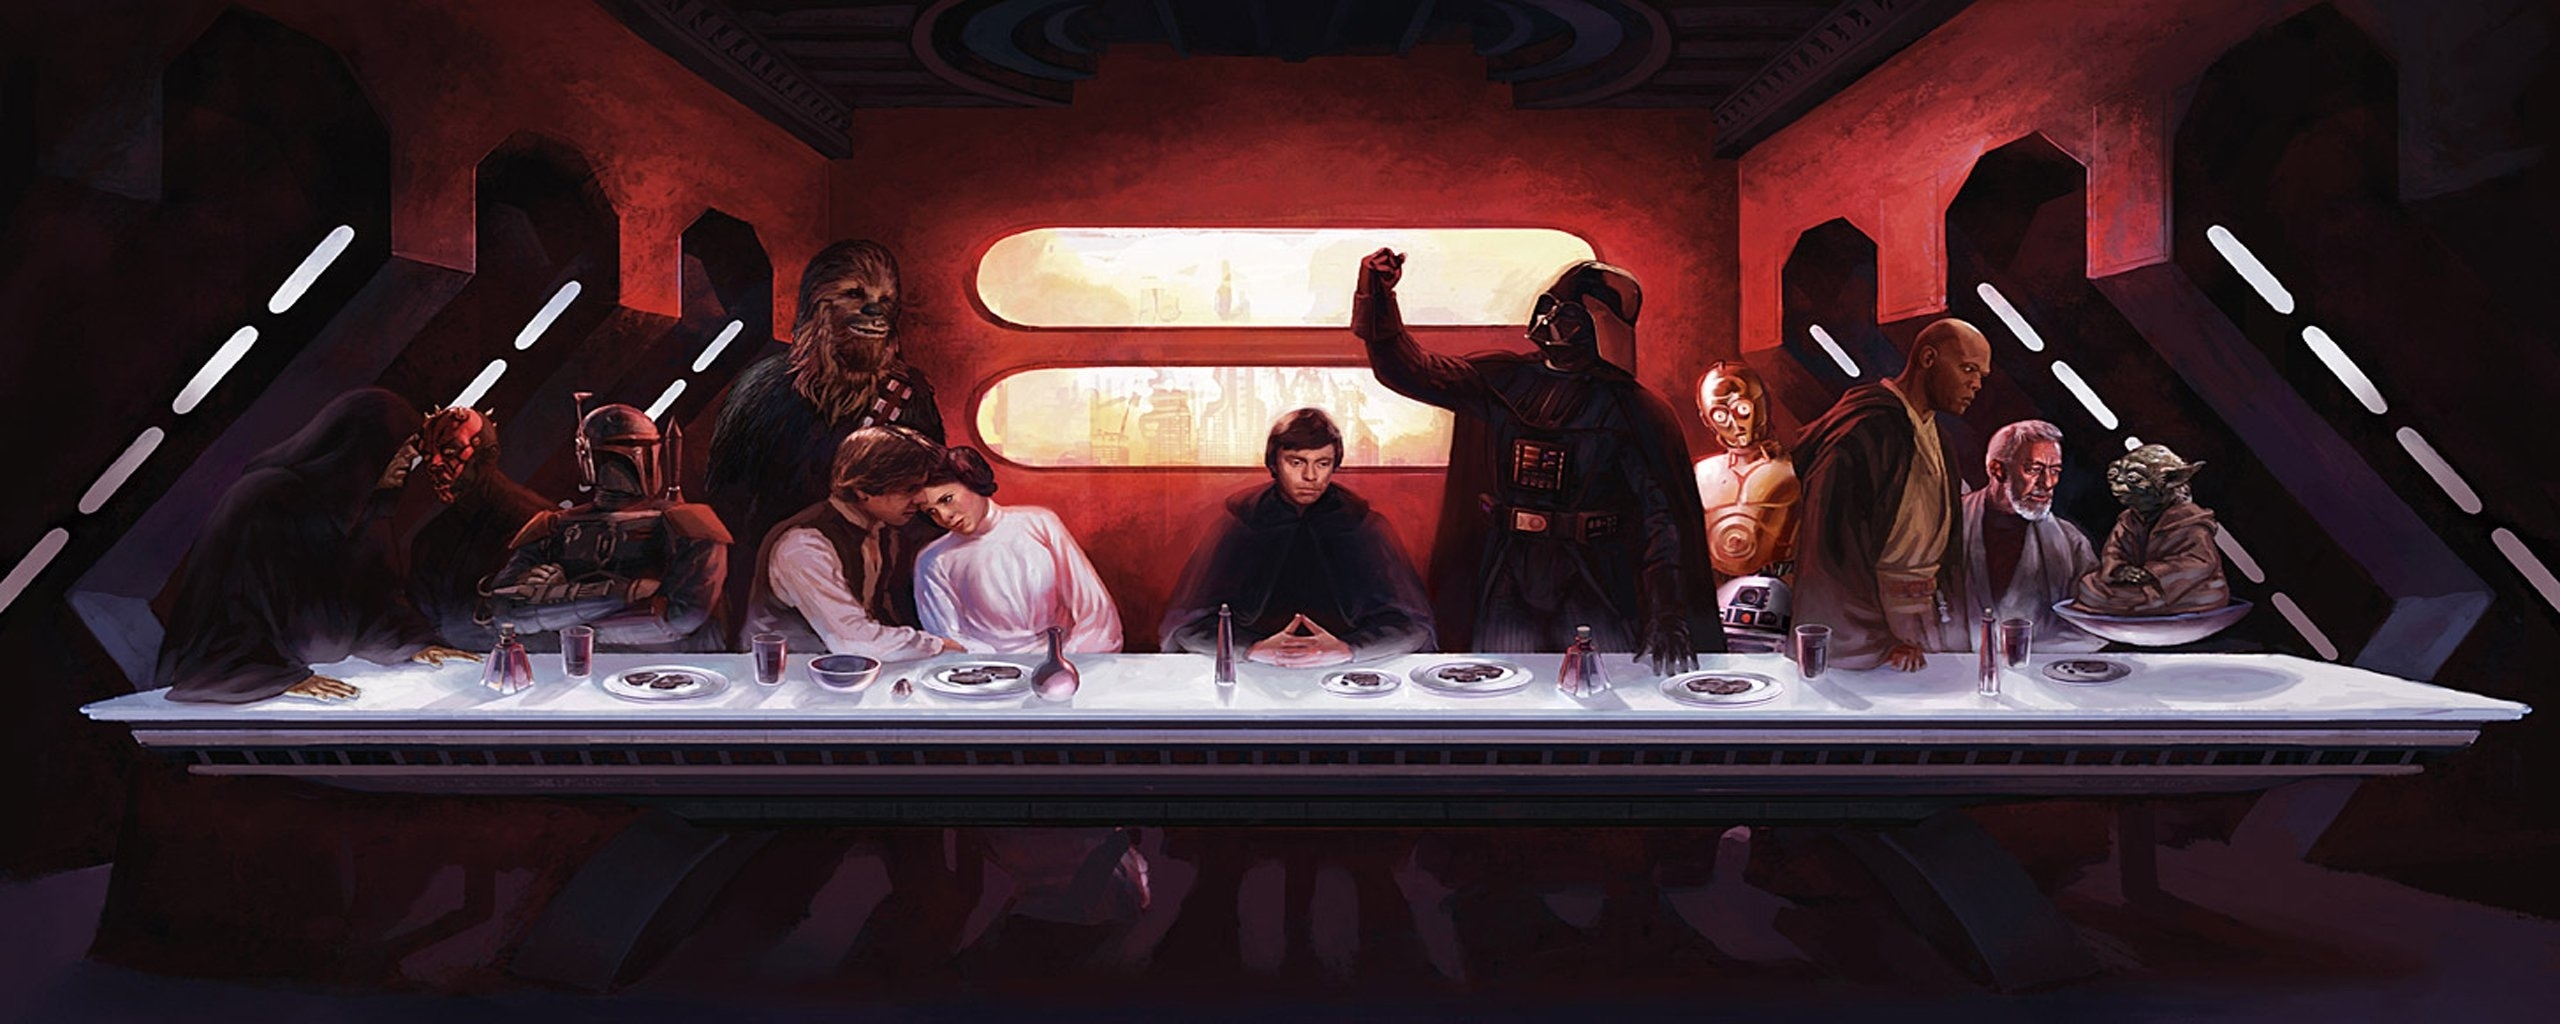 star wars the last supper wallpaper | 2560x1024 | 257769 | wallpaperup